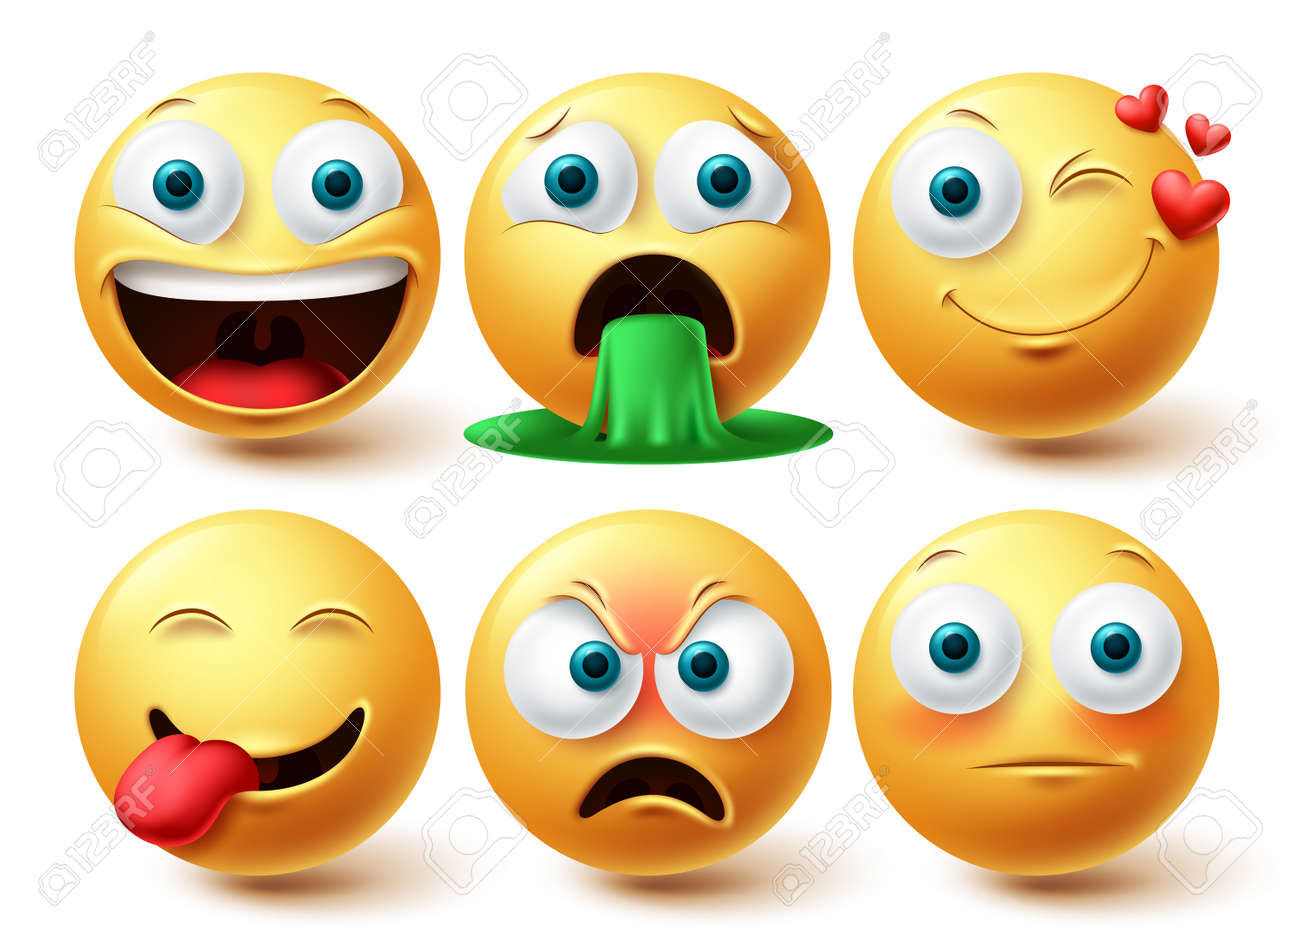 Emoji smileys vector set. Smileys emoticon happy, winking and angry face collection facial expressions isolated in white background for graphic design elements. Vector illustration - 171747803